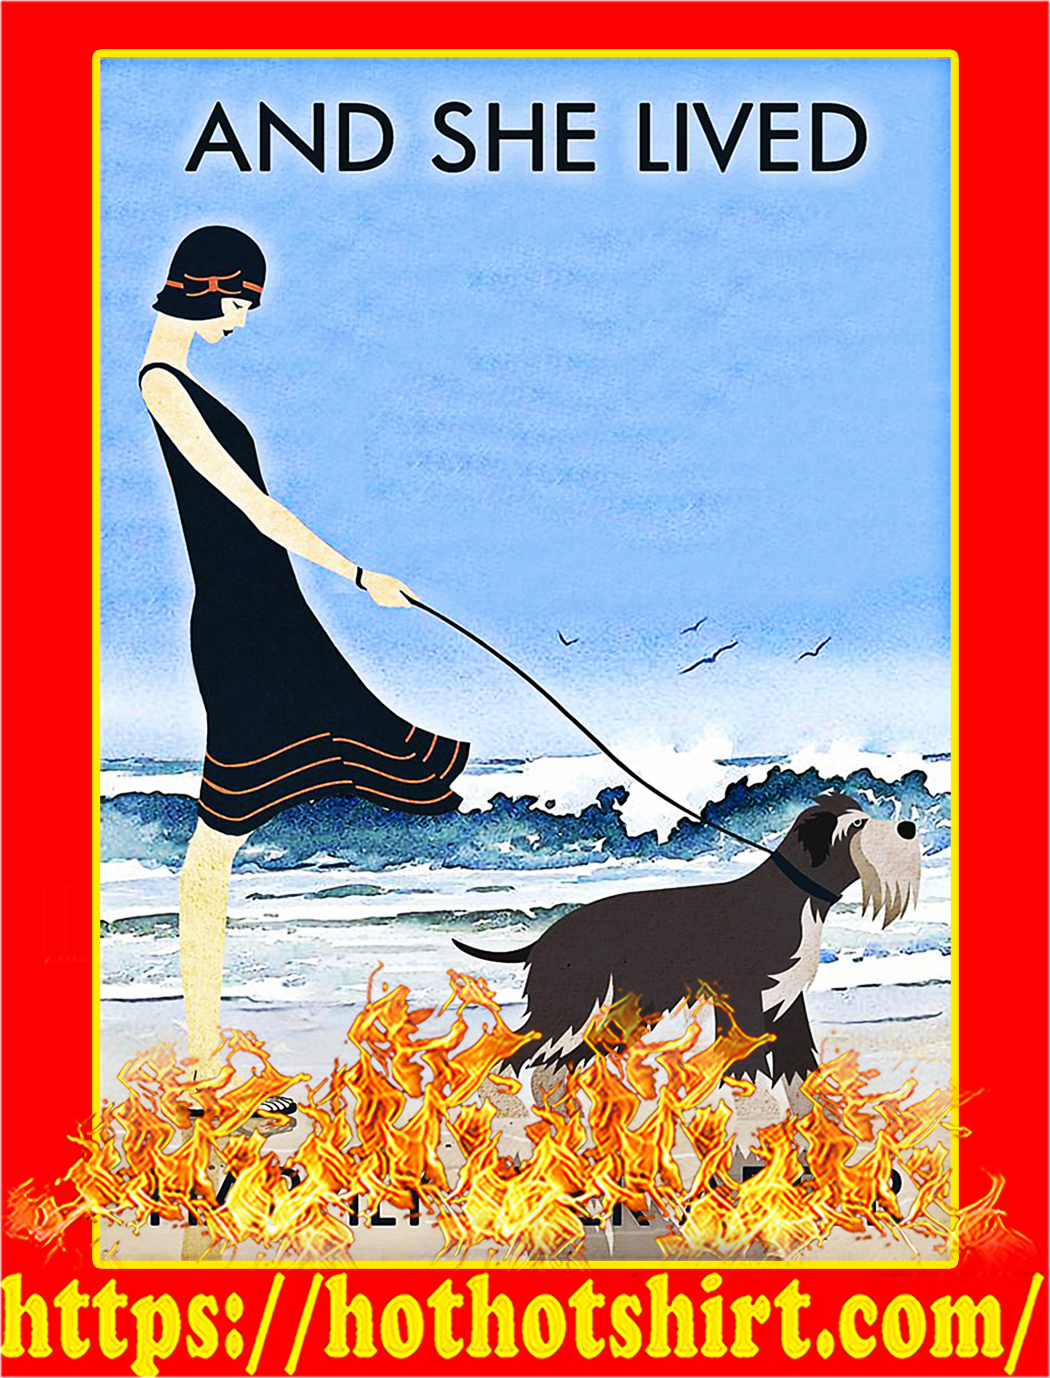 Beach and dog miniature schnauzer and she lived happily ever after poster - A3